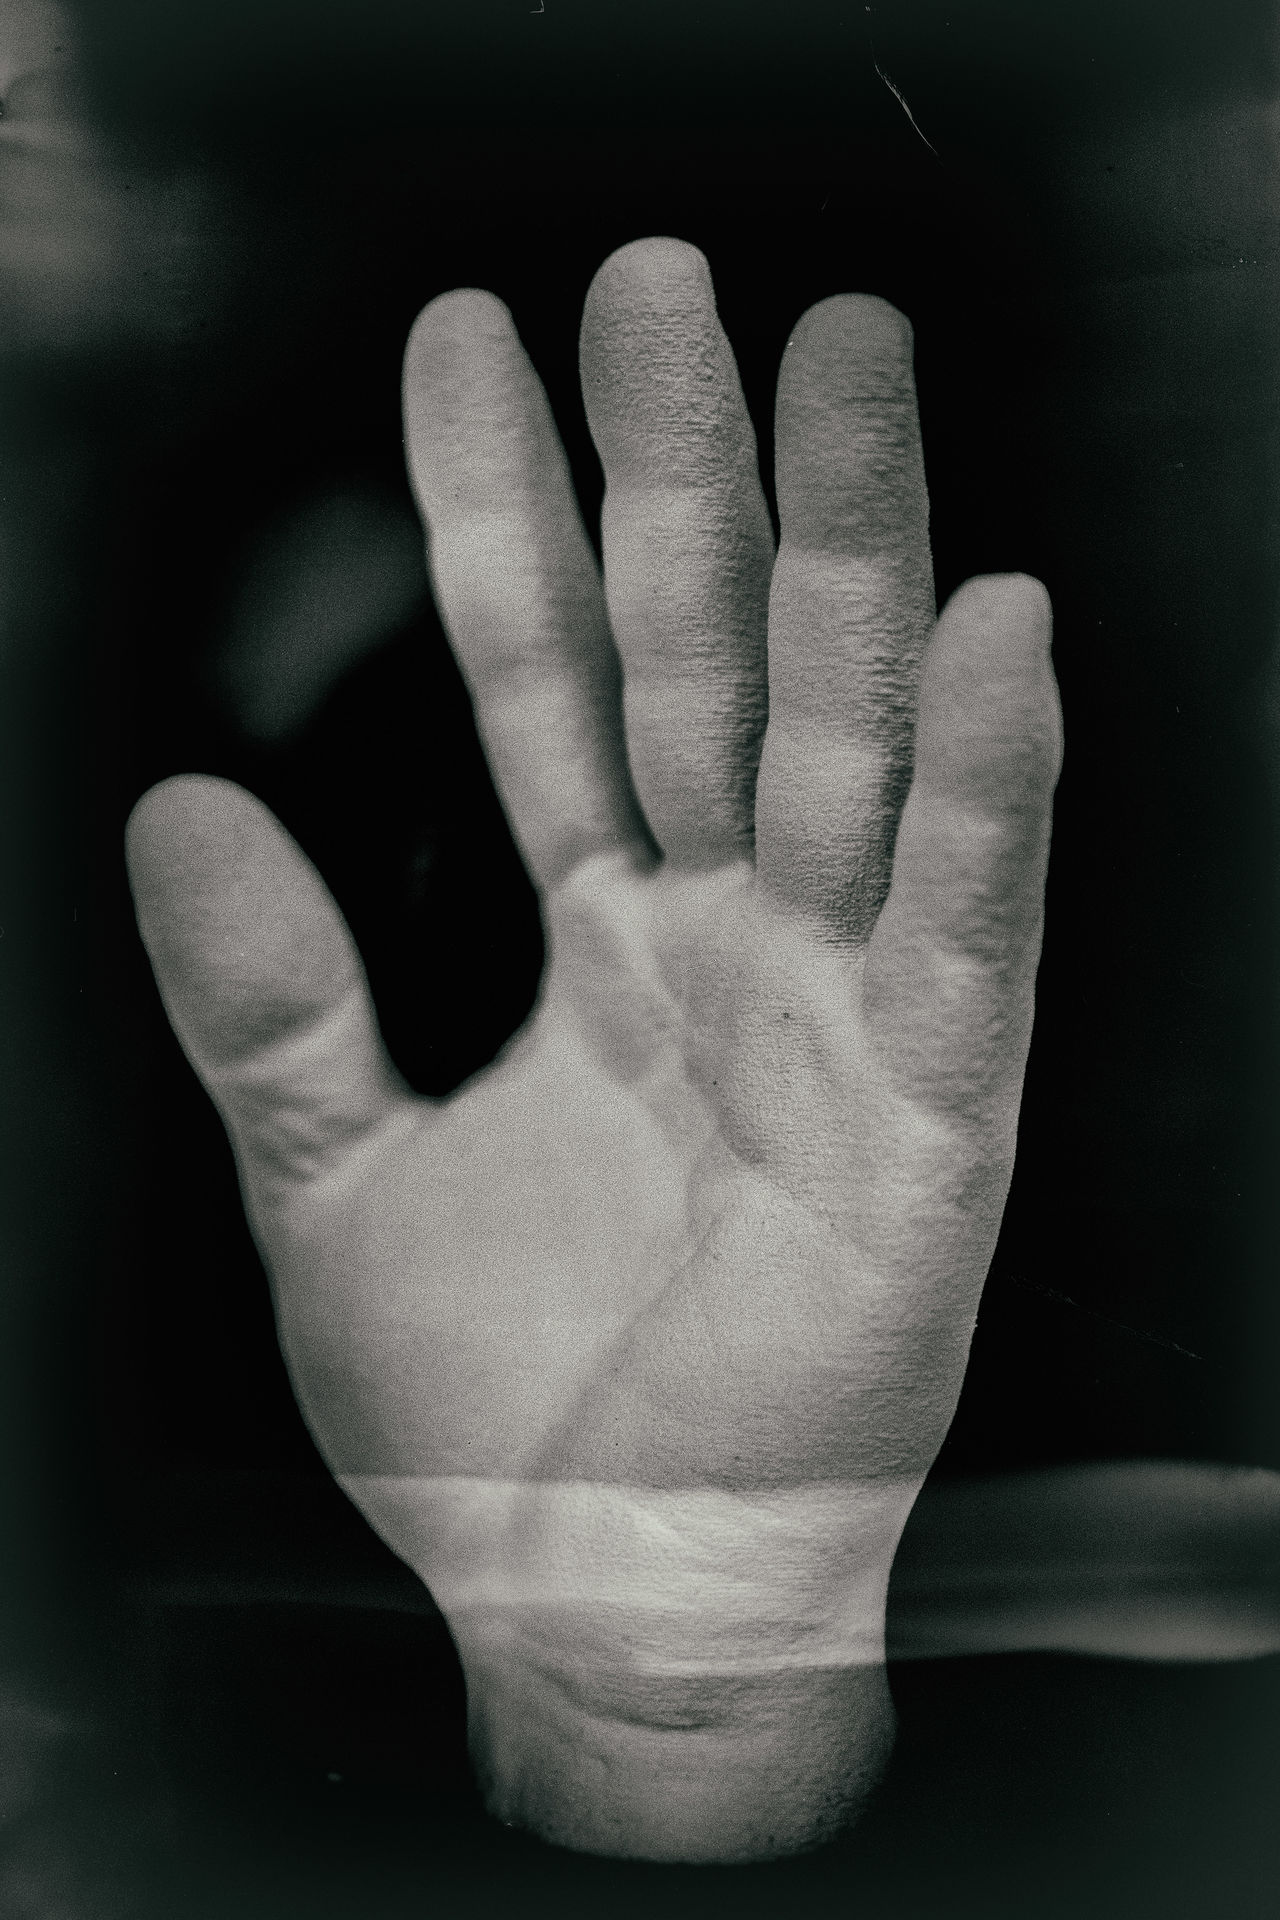 Abstarct Black Background Close-up Dark Finger Tips Fingers Ghost Human Body Part Human Hand Indoors  Man's Hands One Man Only One Person Palm Palm People White Hands